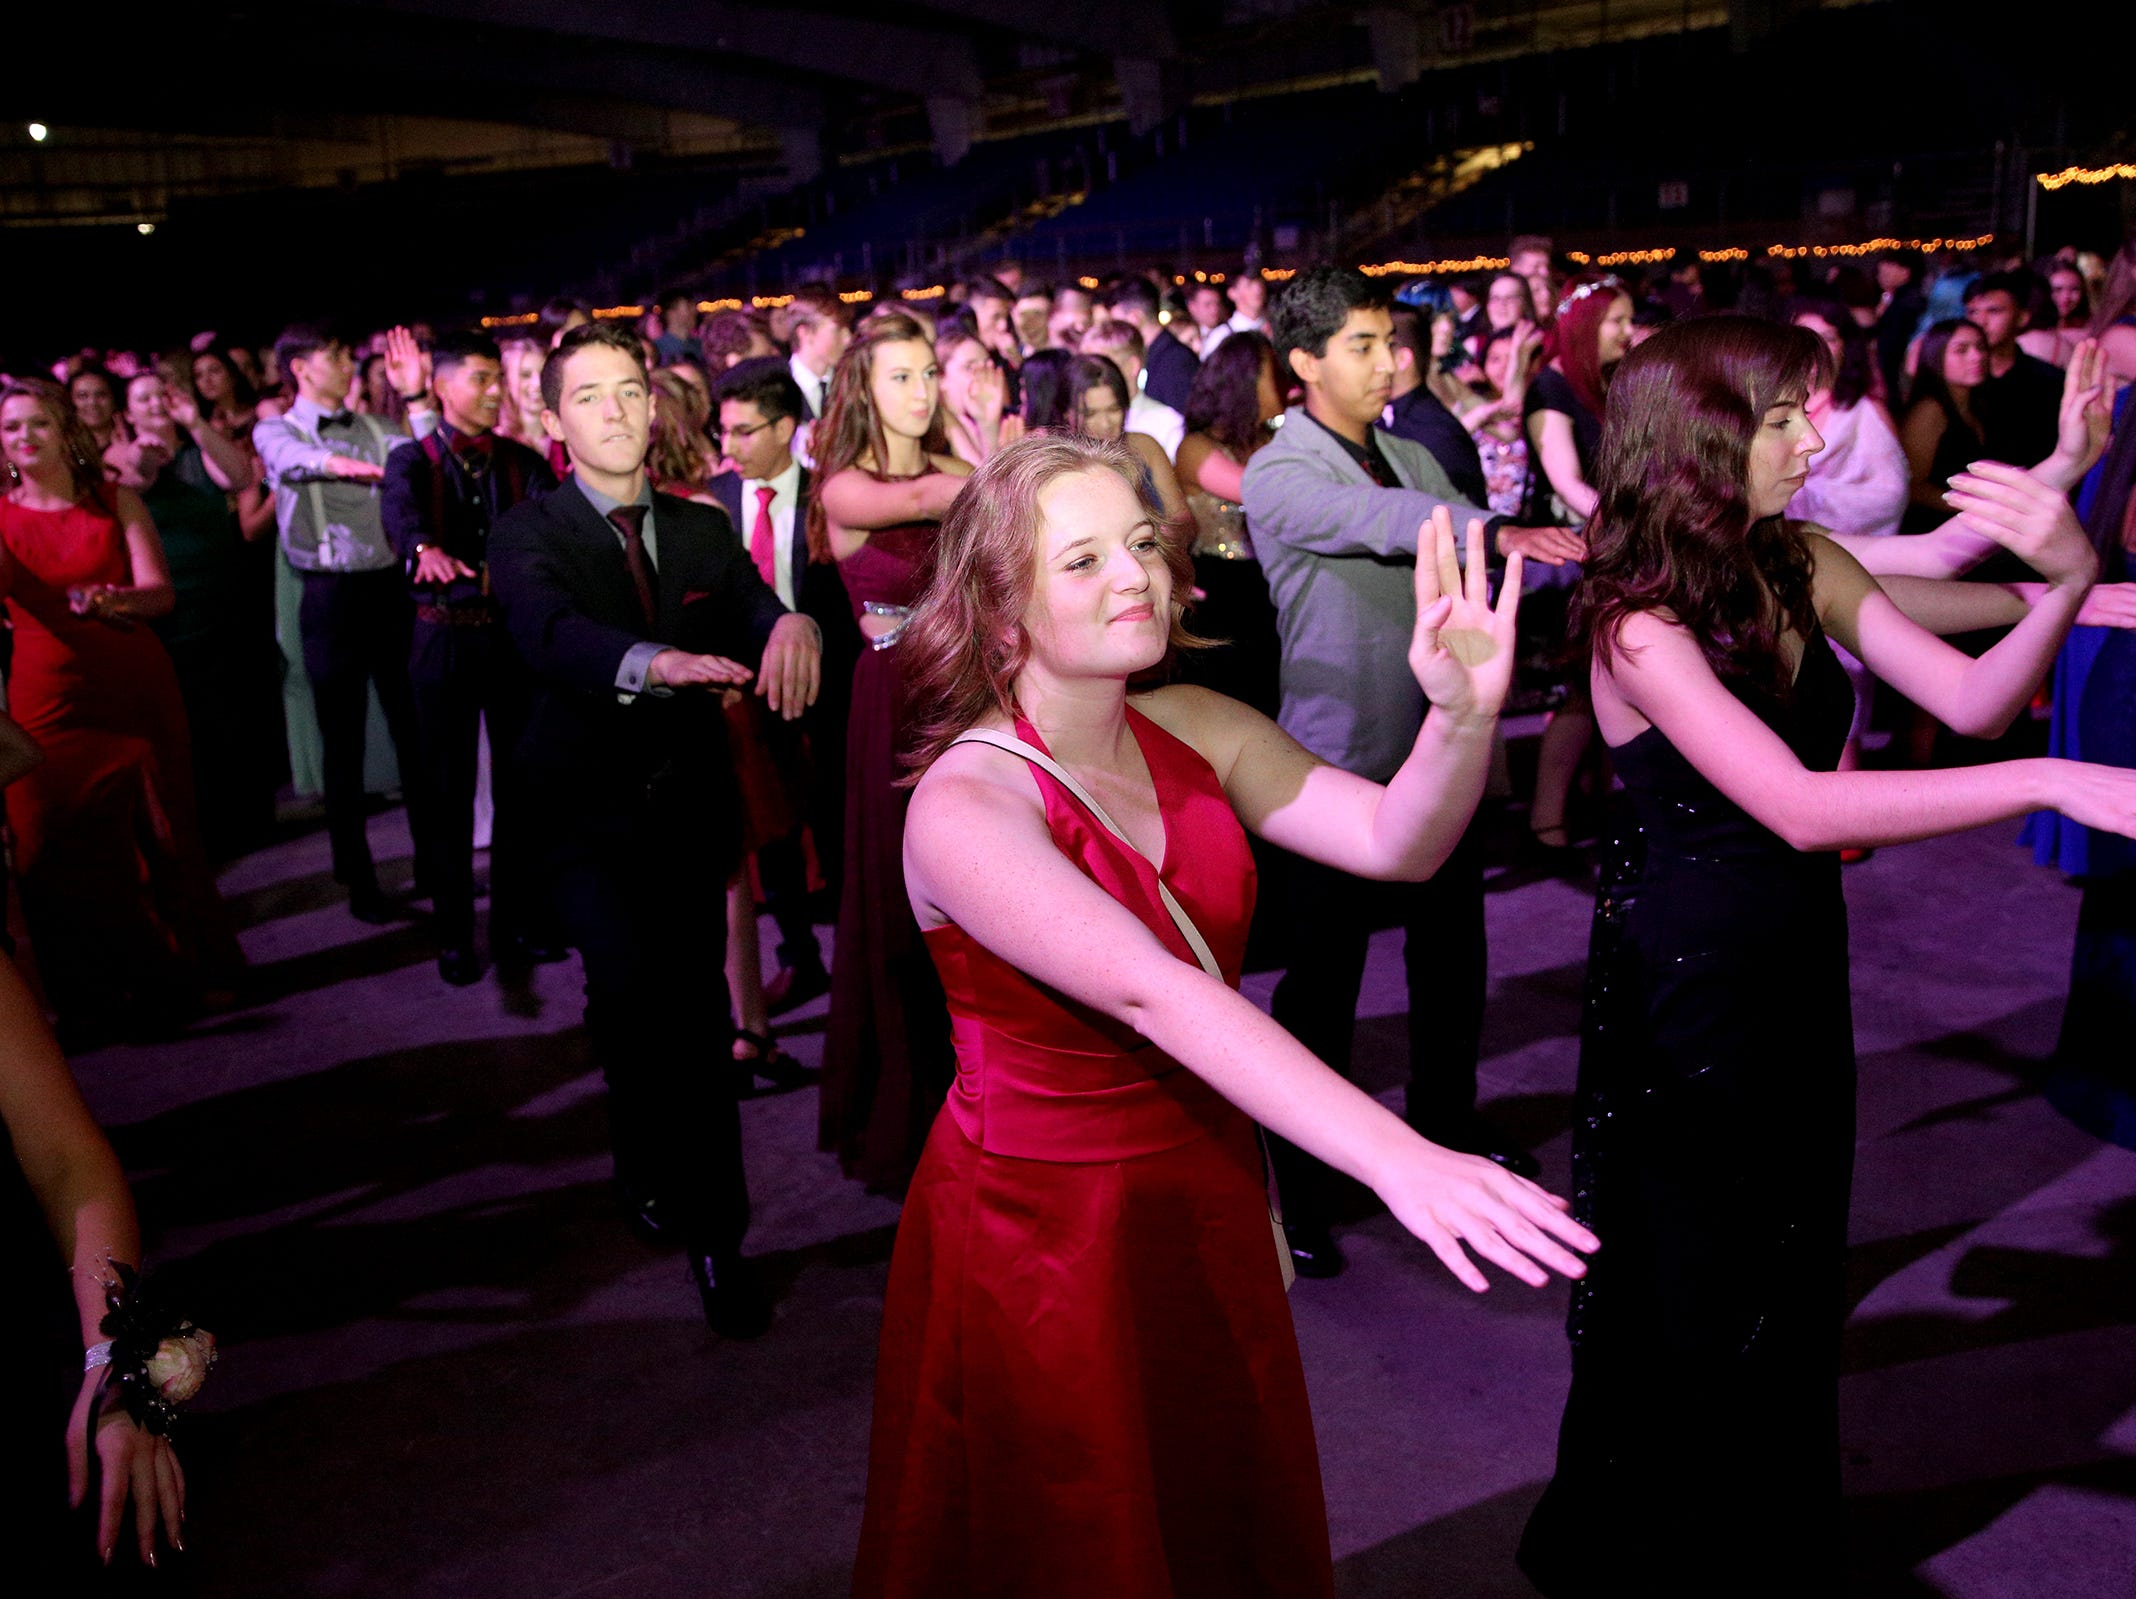 Students dance the Macarena during the annual SnoBall at the Oregon State Fairgrounds Pavilion in Salem on Saturday, Dec. 1, 2018. This year was the 65th annual dance.